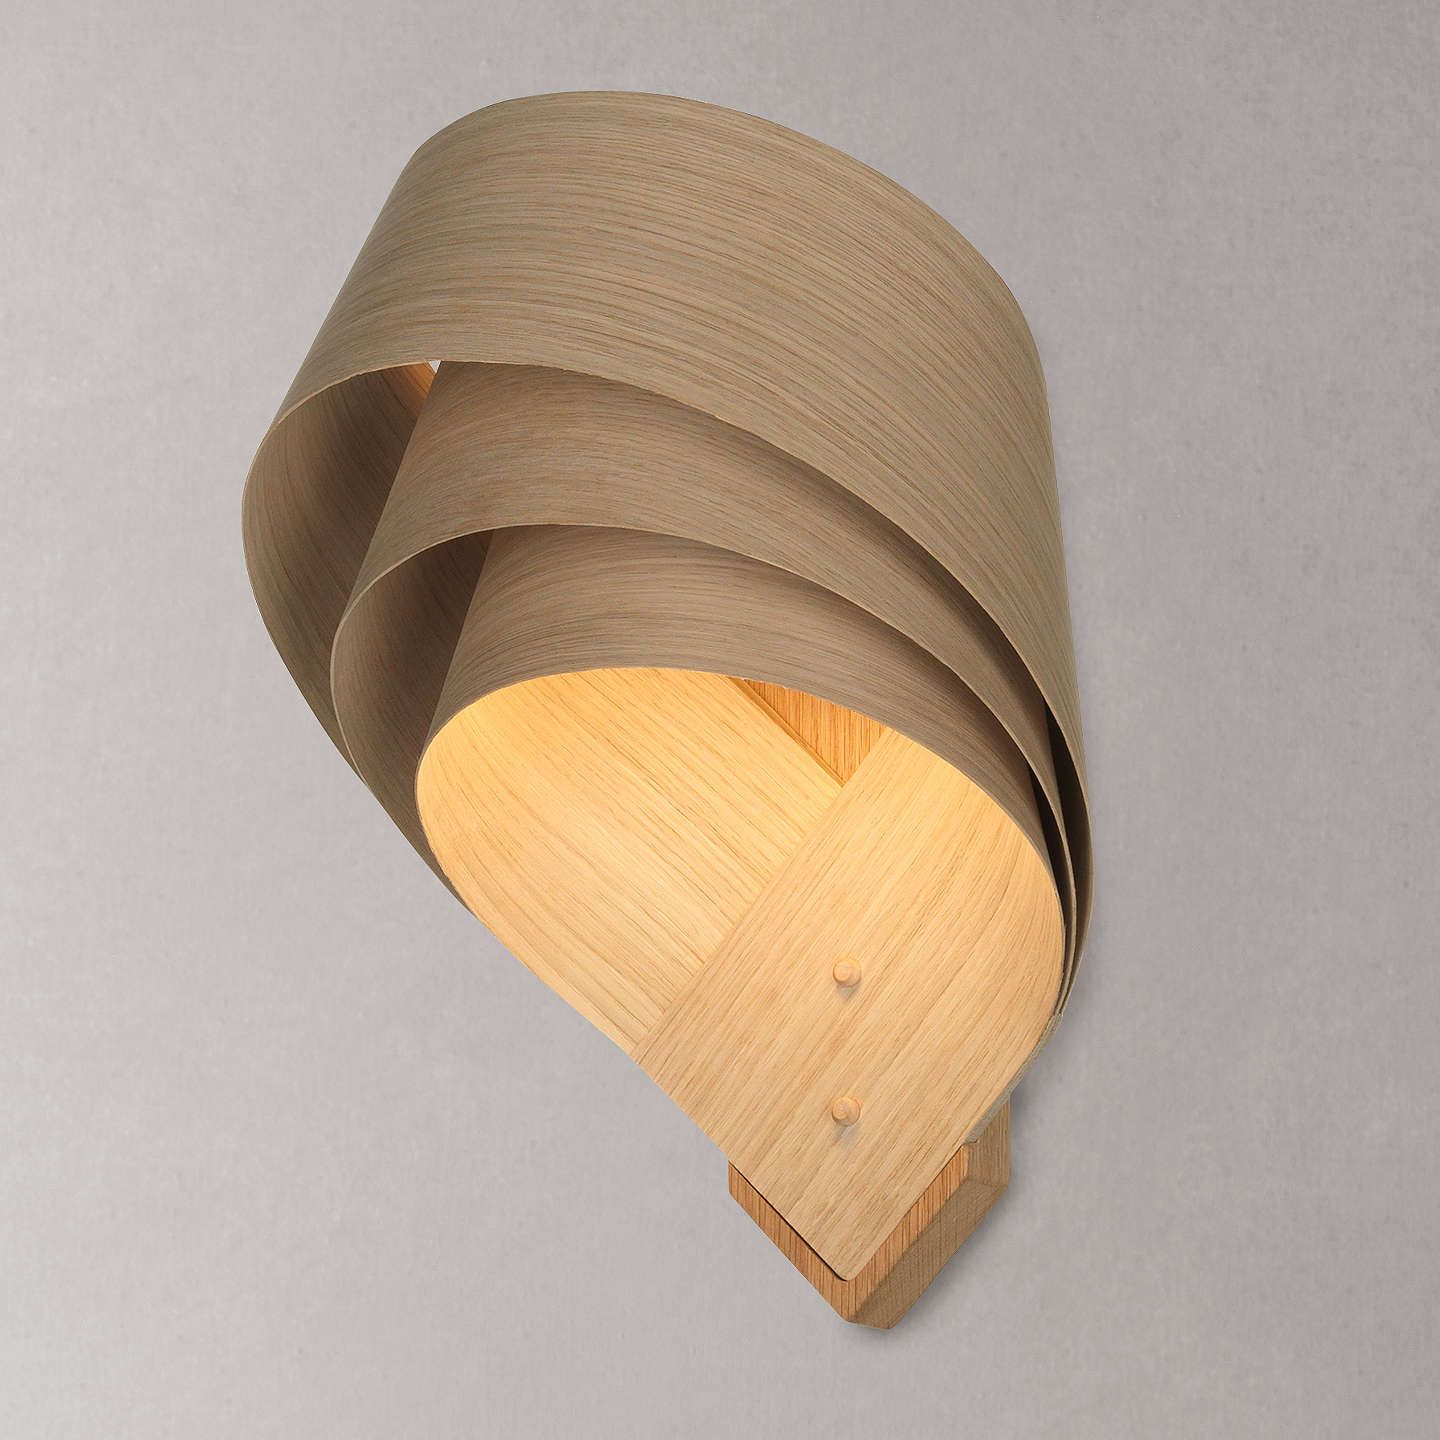 Tom Raffield Cape Wall Light Oak Wooden Lamps Design Wall Light Shades Wooden Pendant Lighting